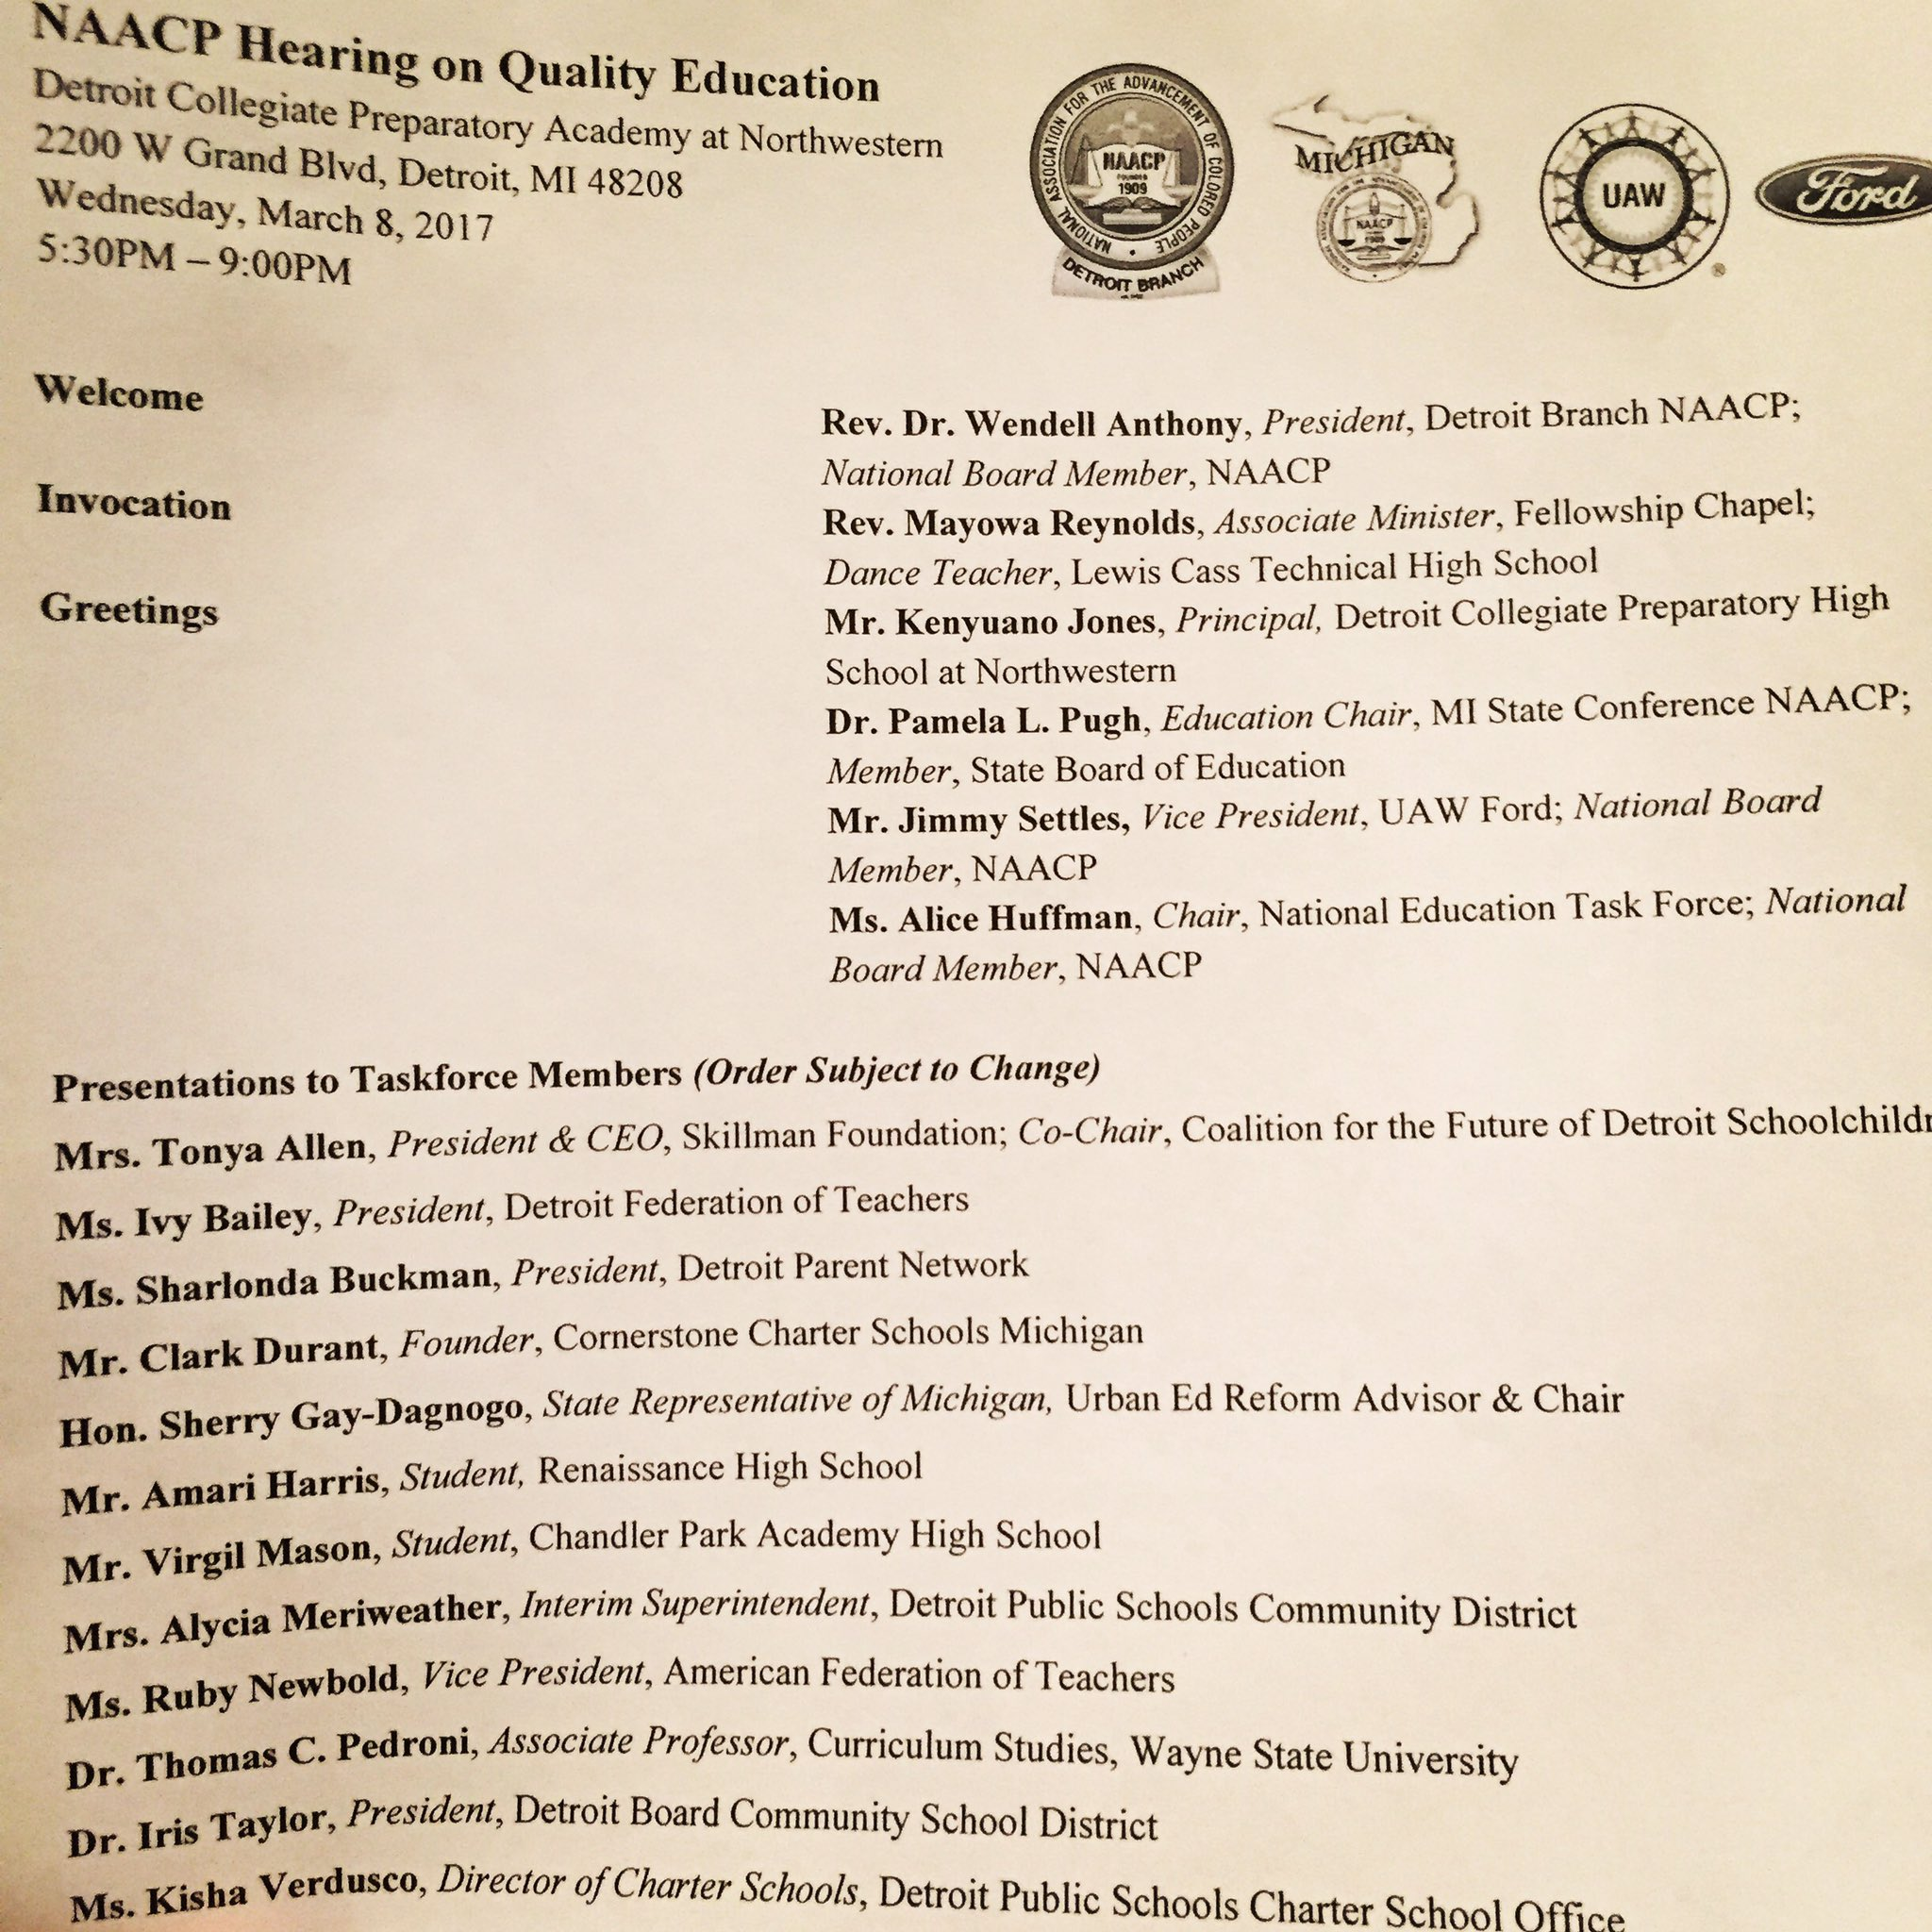 The #NAACPHearing on charter schools is getting started here in Detroit. https://t.co/rk0sViSM4I